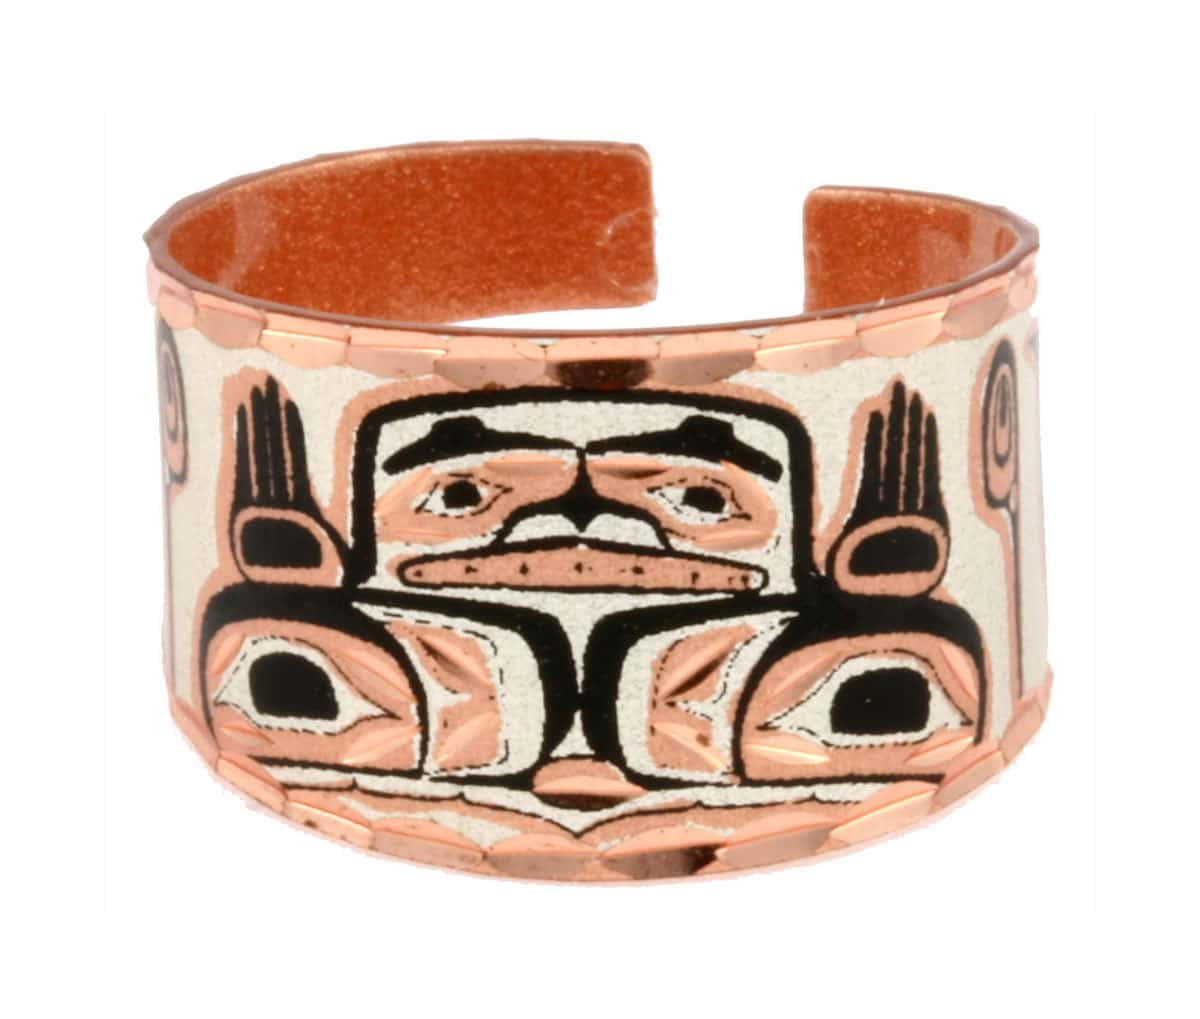 Buy adjustable handmade jewelry copper rings created in Native Haida design